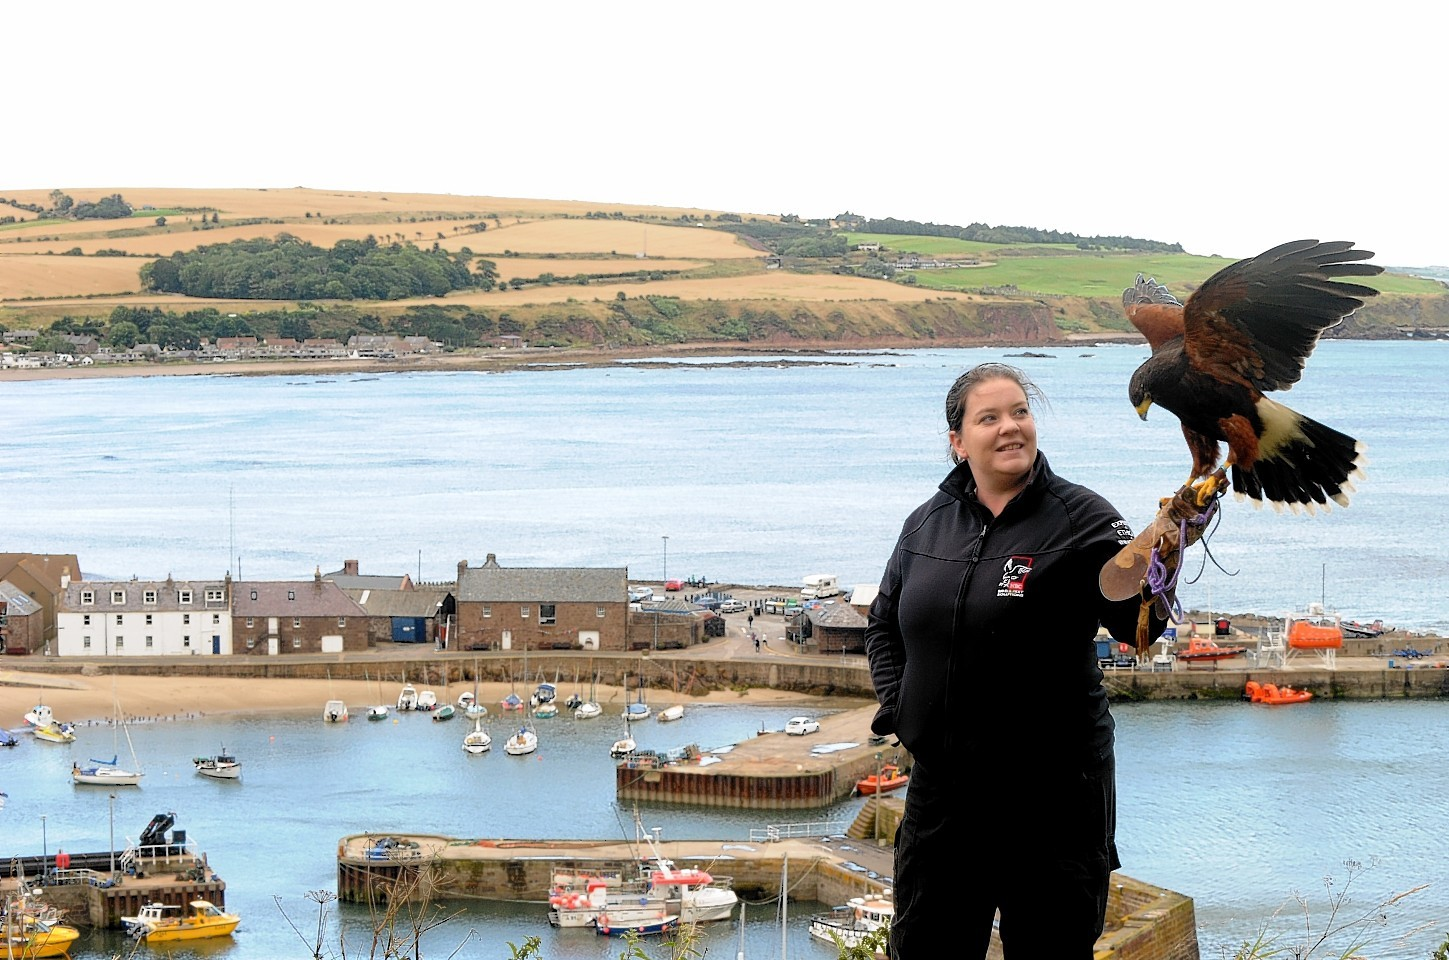 Harris Hawk Sky and handler Kirsty Imlay will patrol Stonehaven to scare off gulls